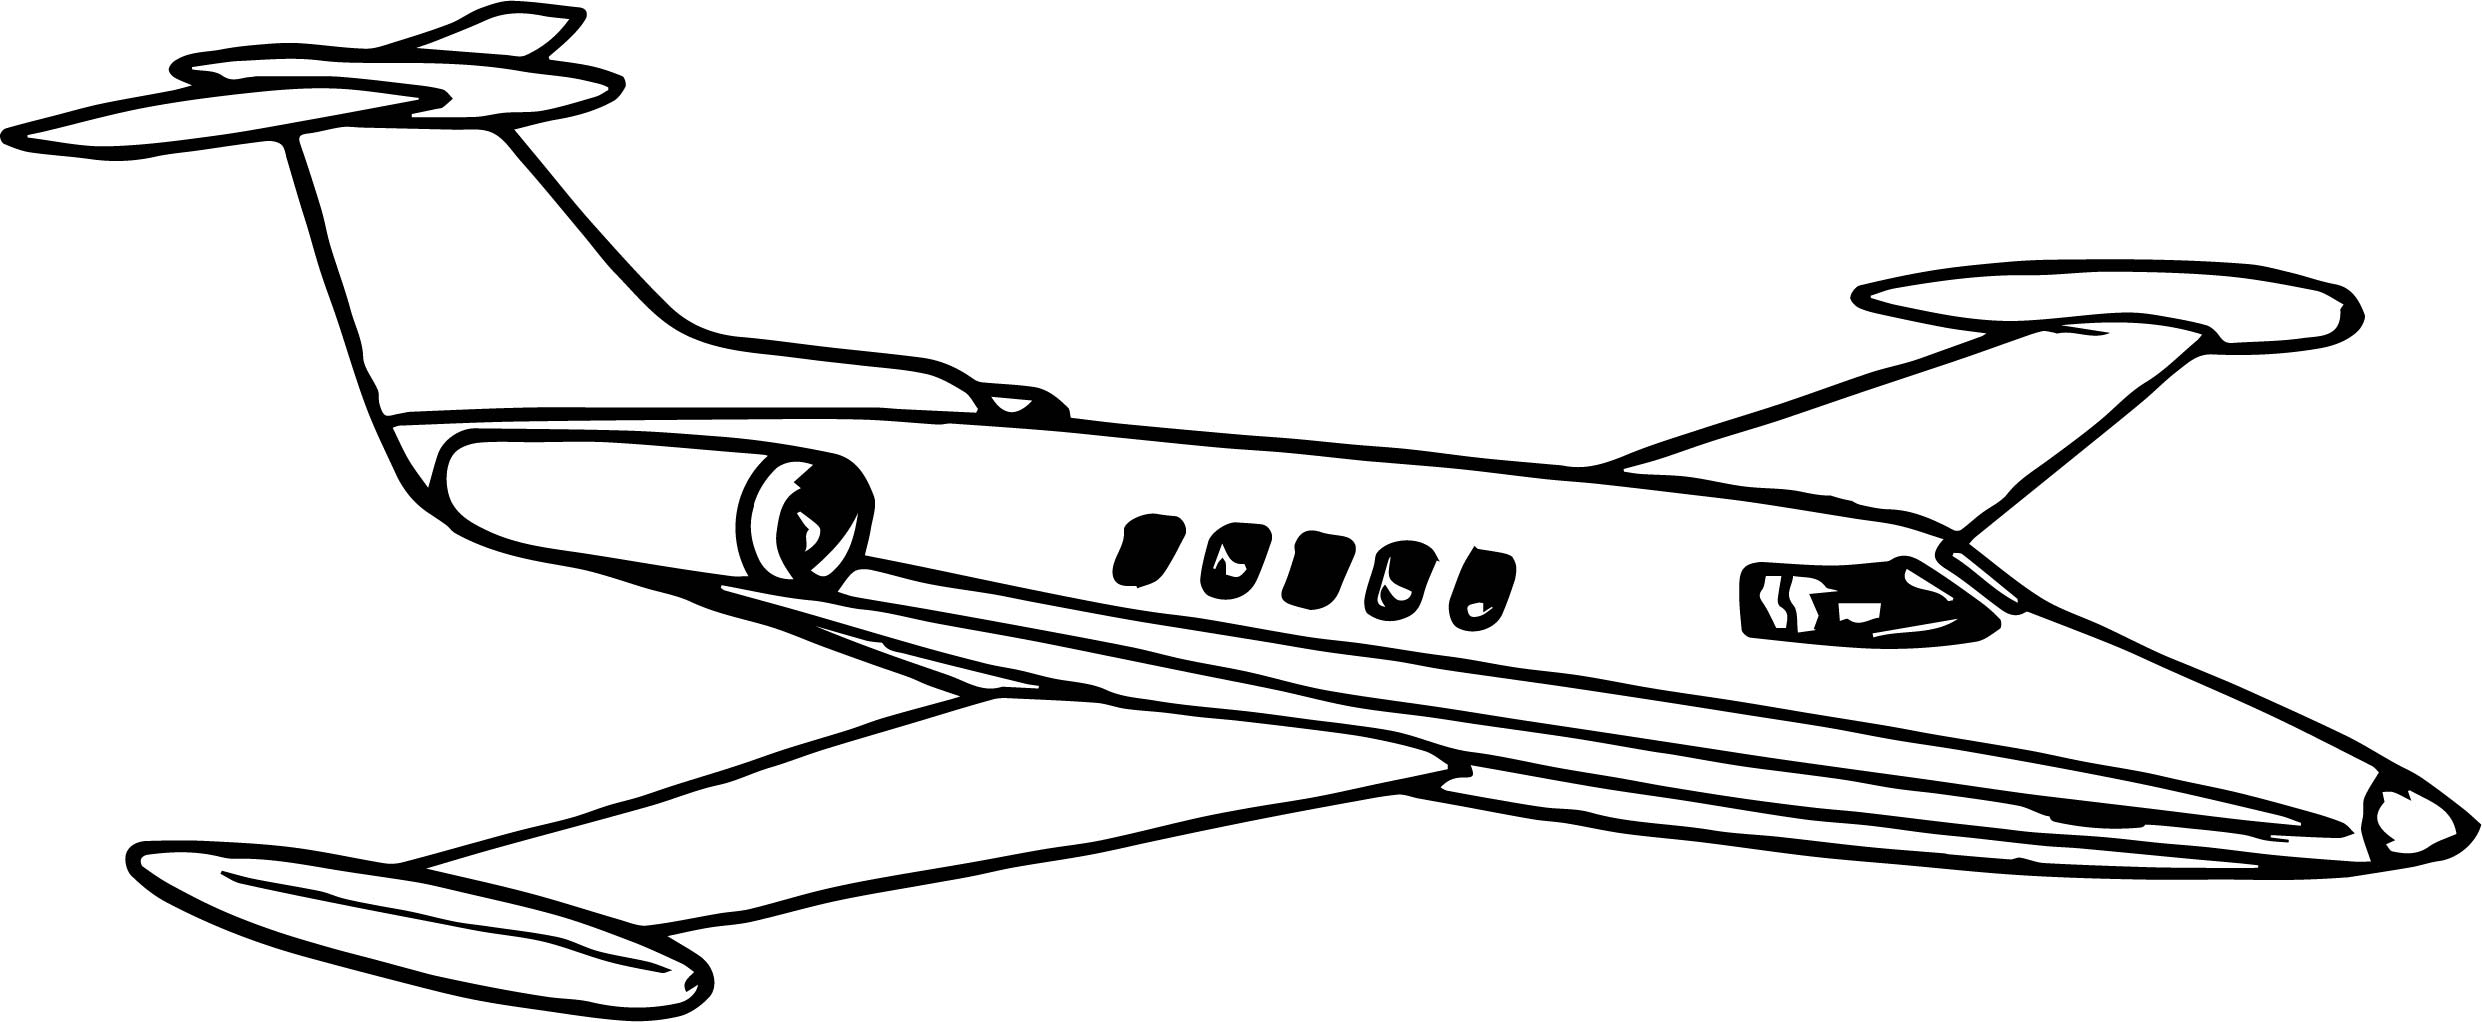 Vip Airplane Coloring Page Wecoloringpage